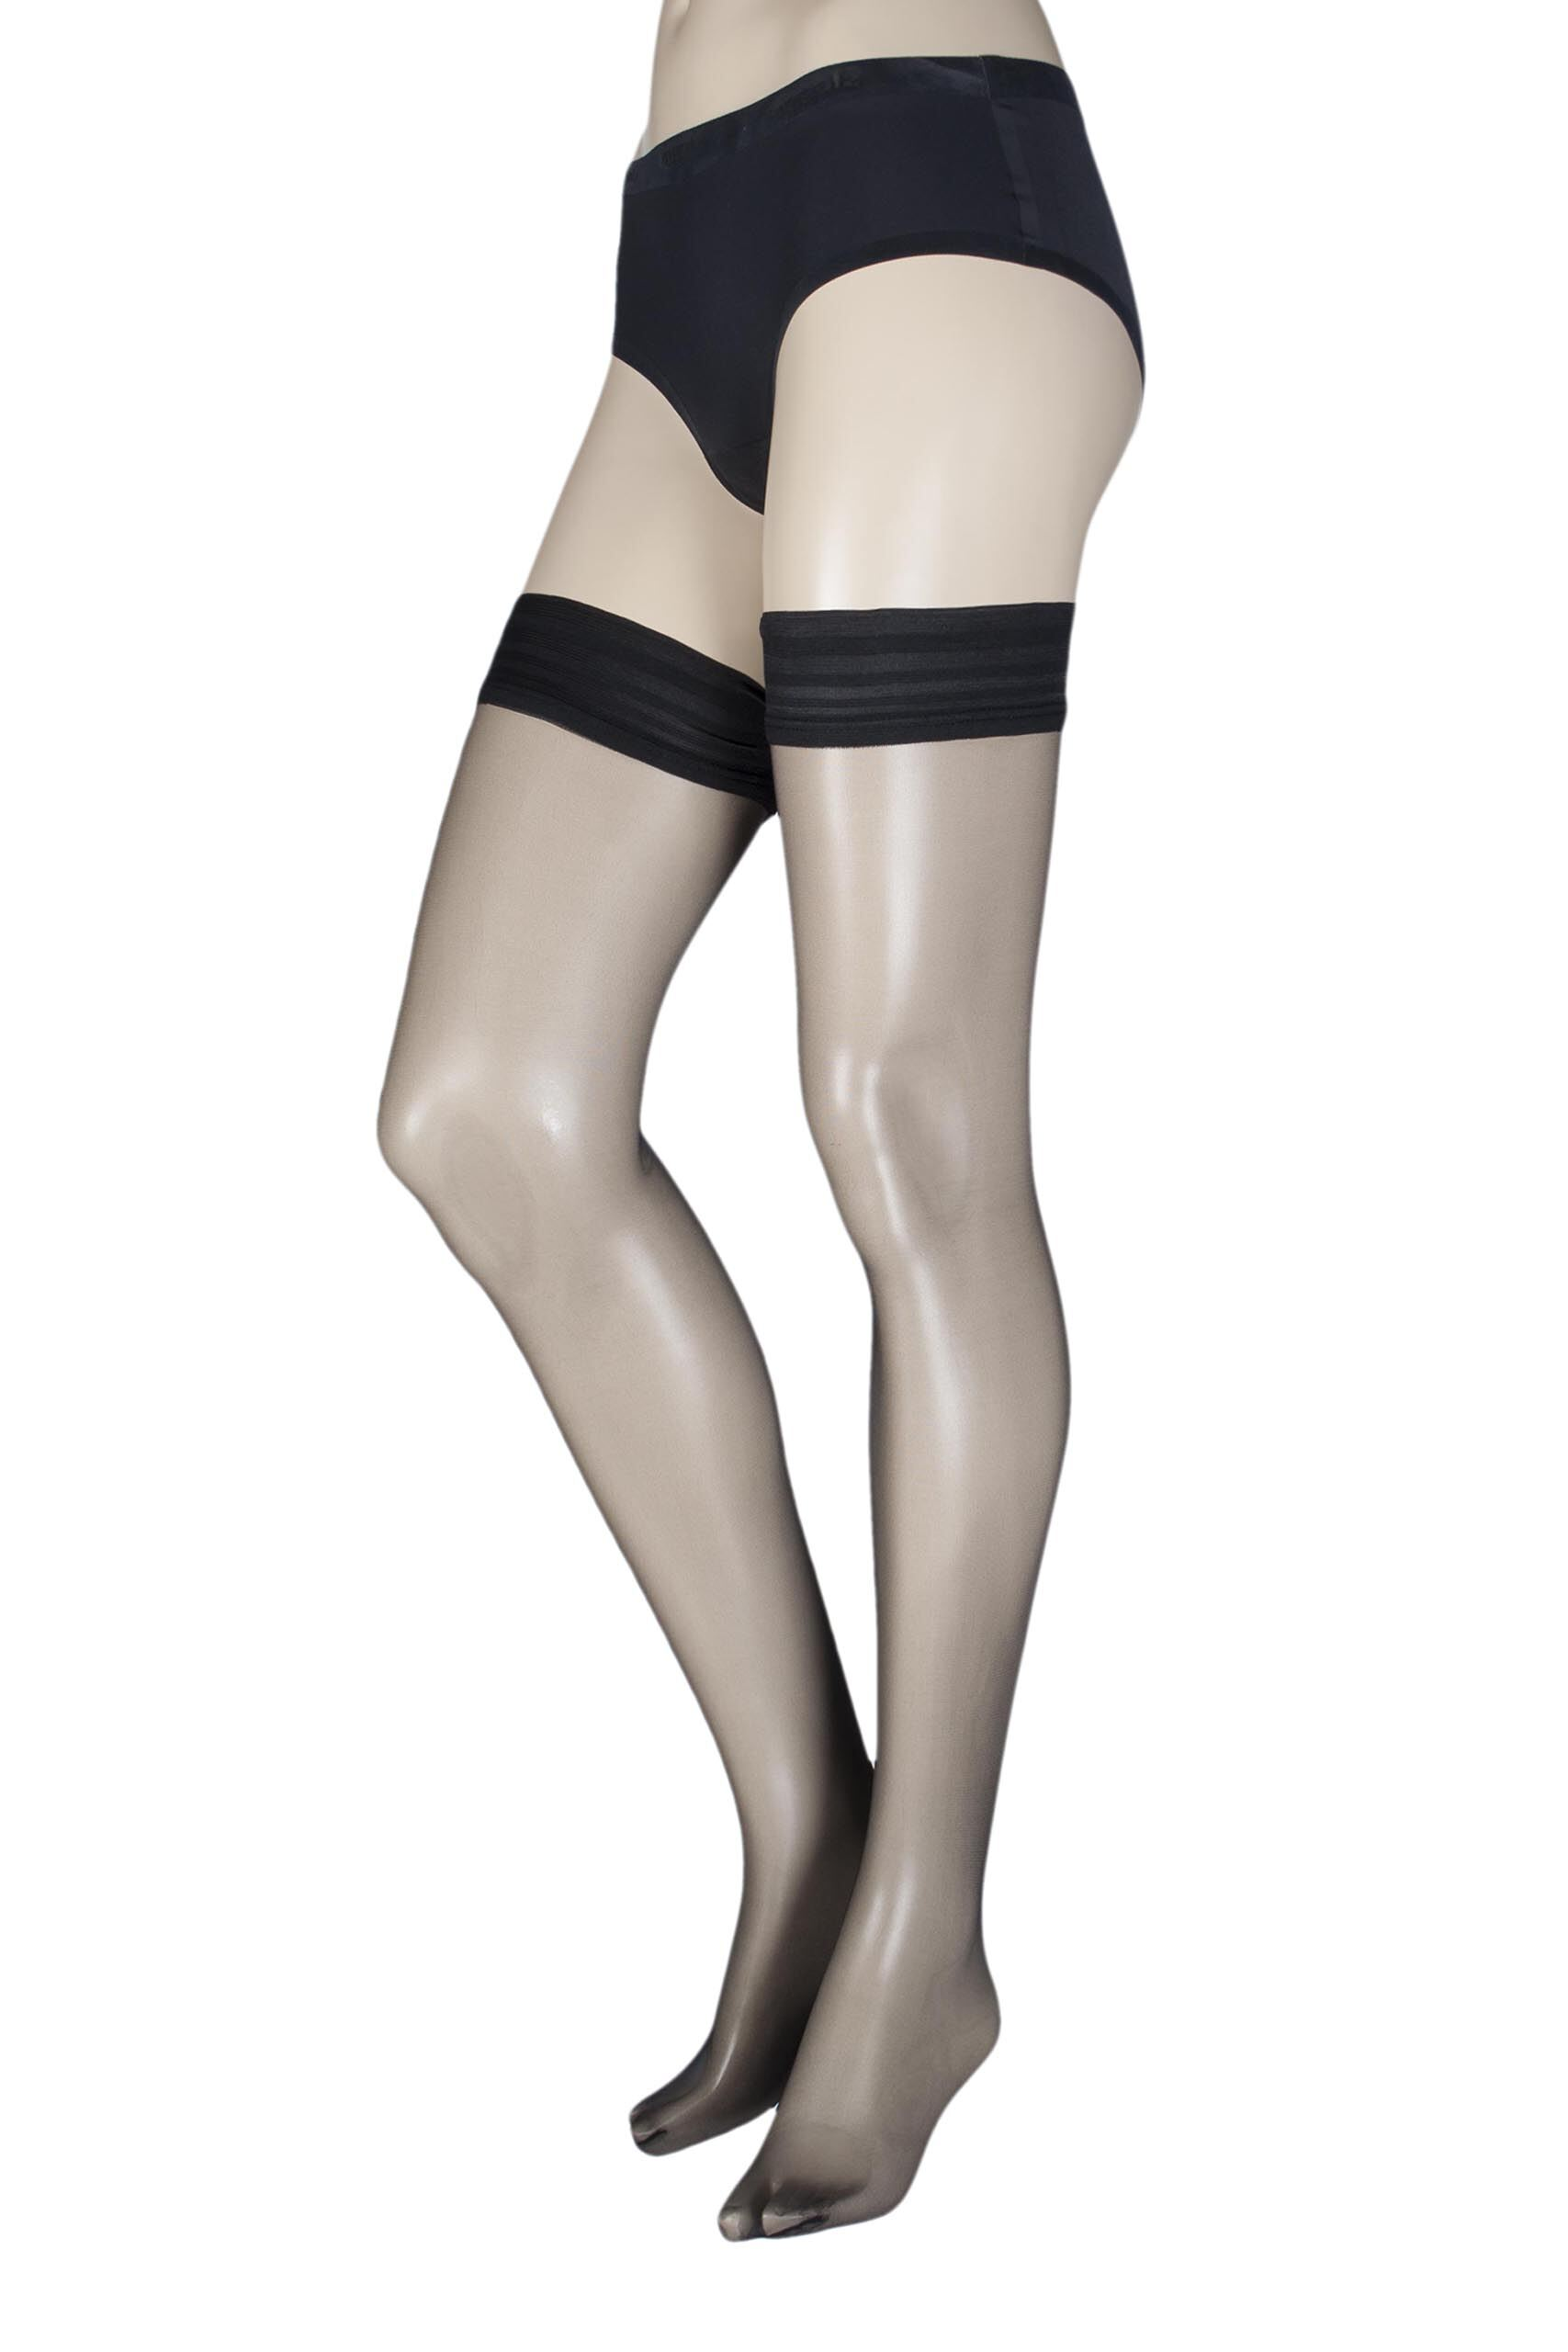 Image of 1 Pair Black Ultimate Sexy Sheer Hold Ups Ladies Small - Calvin Klein